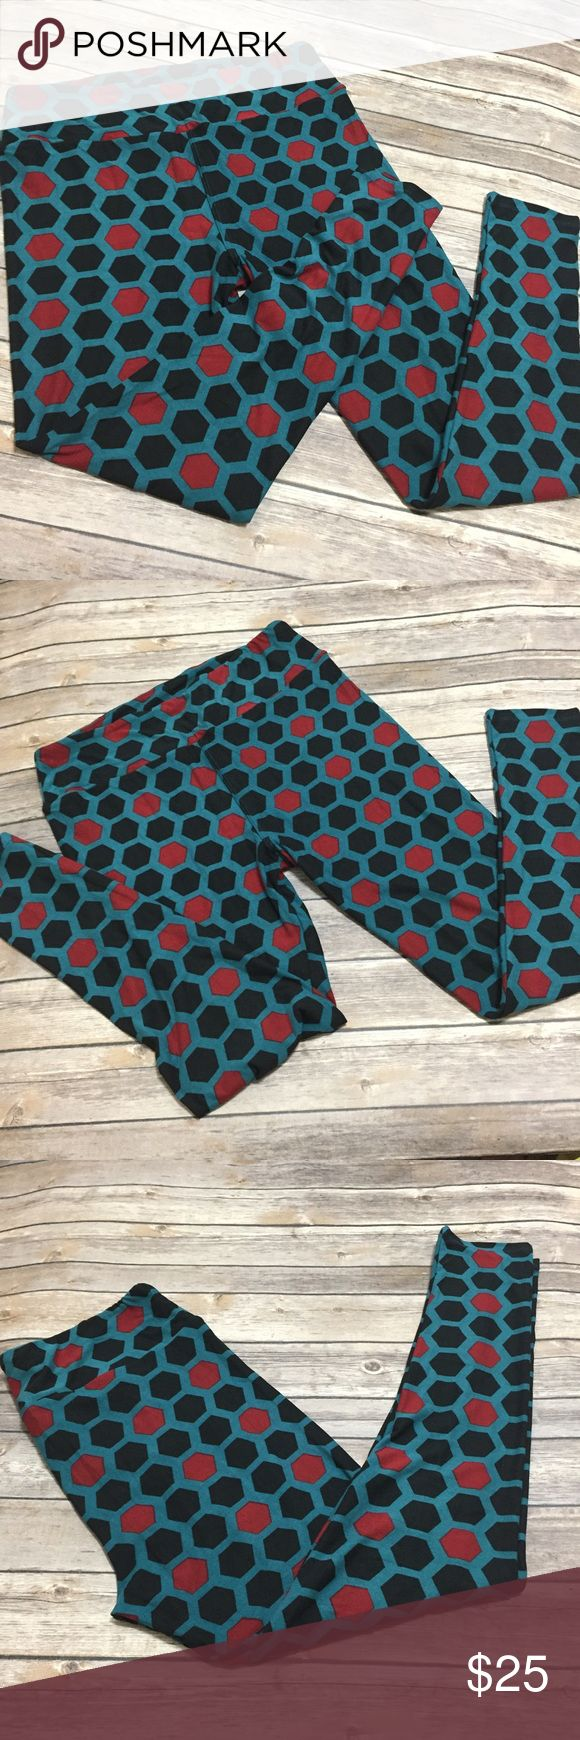 LuLaRoe TC Leggings LuLaRoe Tall & Curvy (TC) black, blue & red honeycomb-like design Leggings. Never worn, never tried on, NWT (if you know LLR leggings you know that although they're NEW, leggings DO NOT come with an actual tag since the tag since would ruin the fabric). There are cards, however you will only get a card if you buy TWO leggings. *I'm not a LuLaRoe Consultant! LuLaRoe Pants Leggings